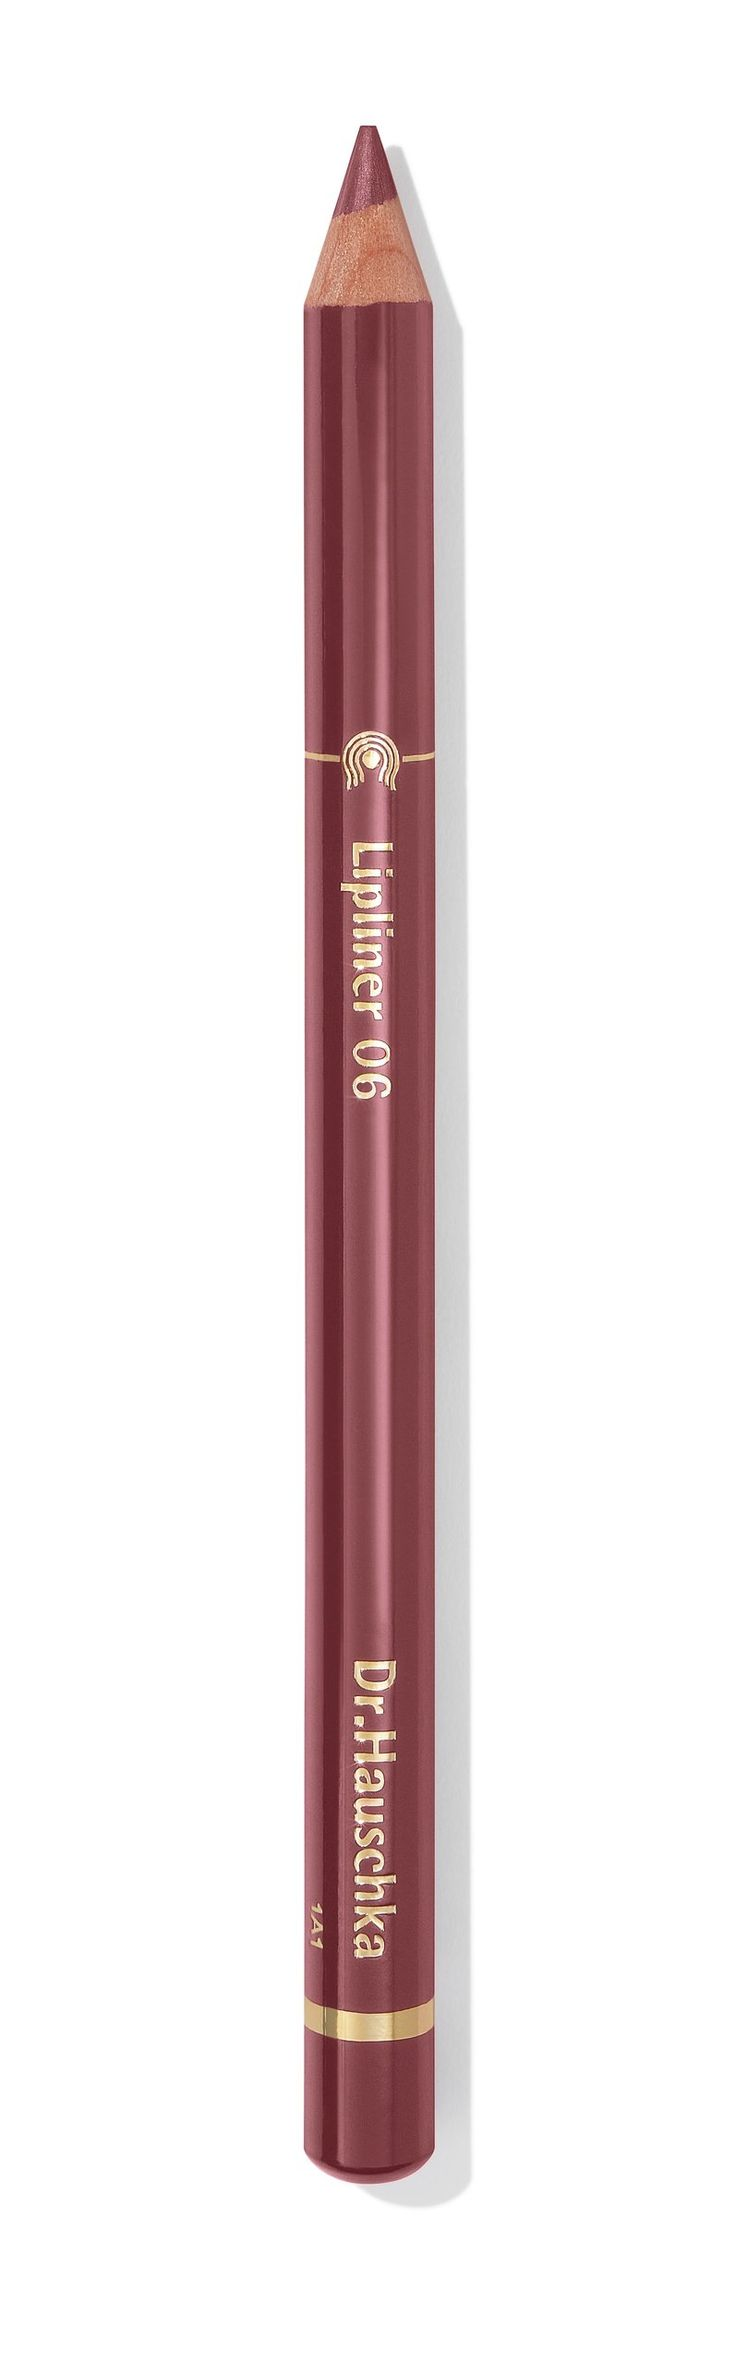 Dr. Hauschka Novum Lip Liner, Garnet, 0.04 Ounce. Truly organic and/or natural skin care products, certified to NATRUE and/or BDIH standards. Free from synthetic fragrances, dyes and preservatives. Free from mineral oil, parabens, silicones and PEGs.